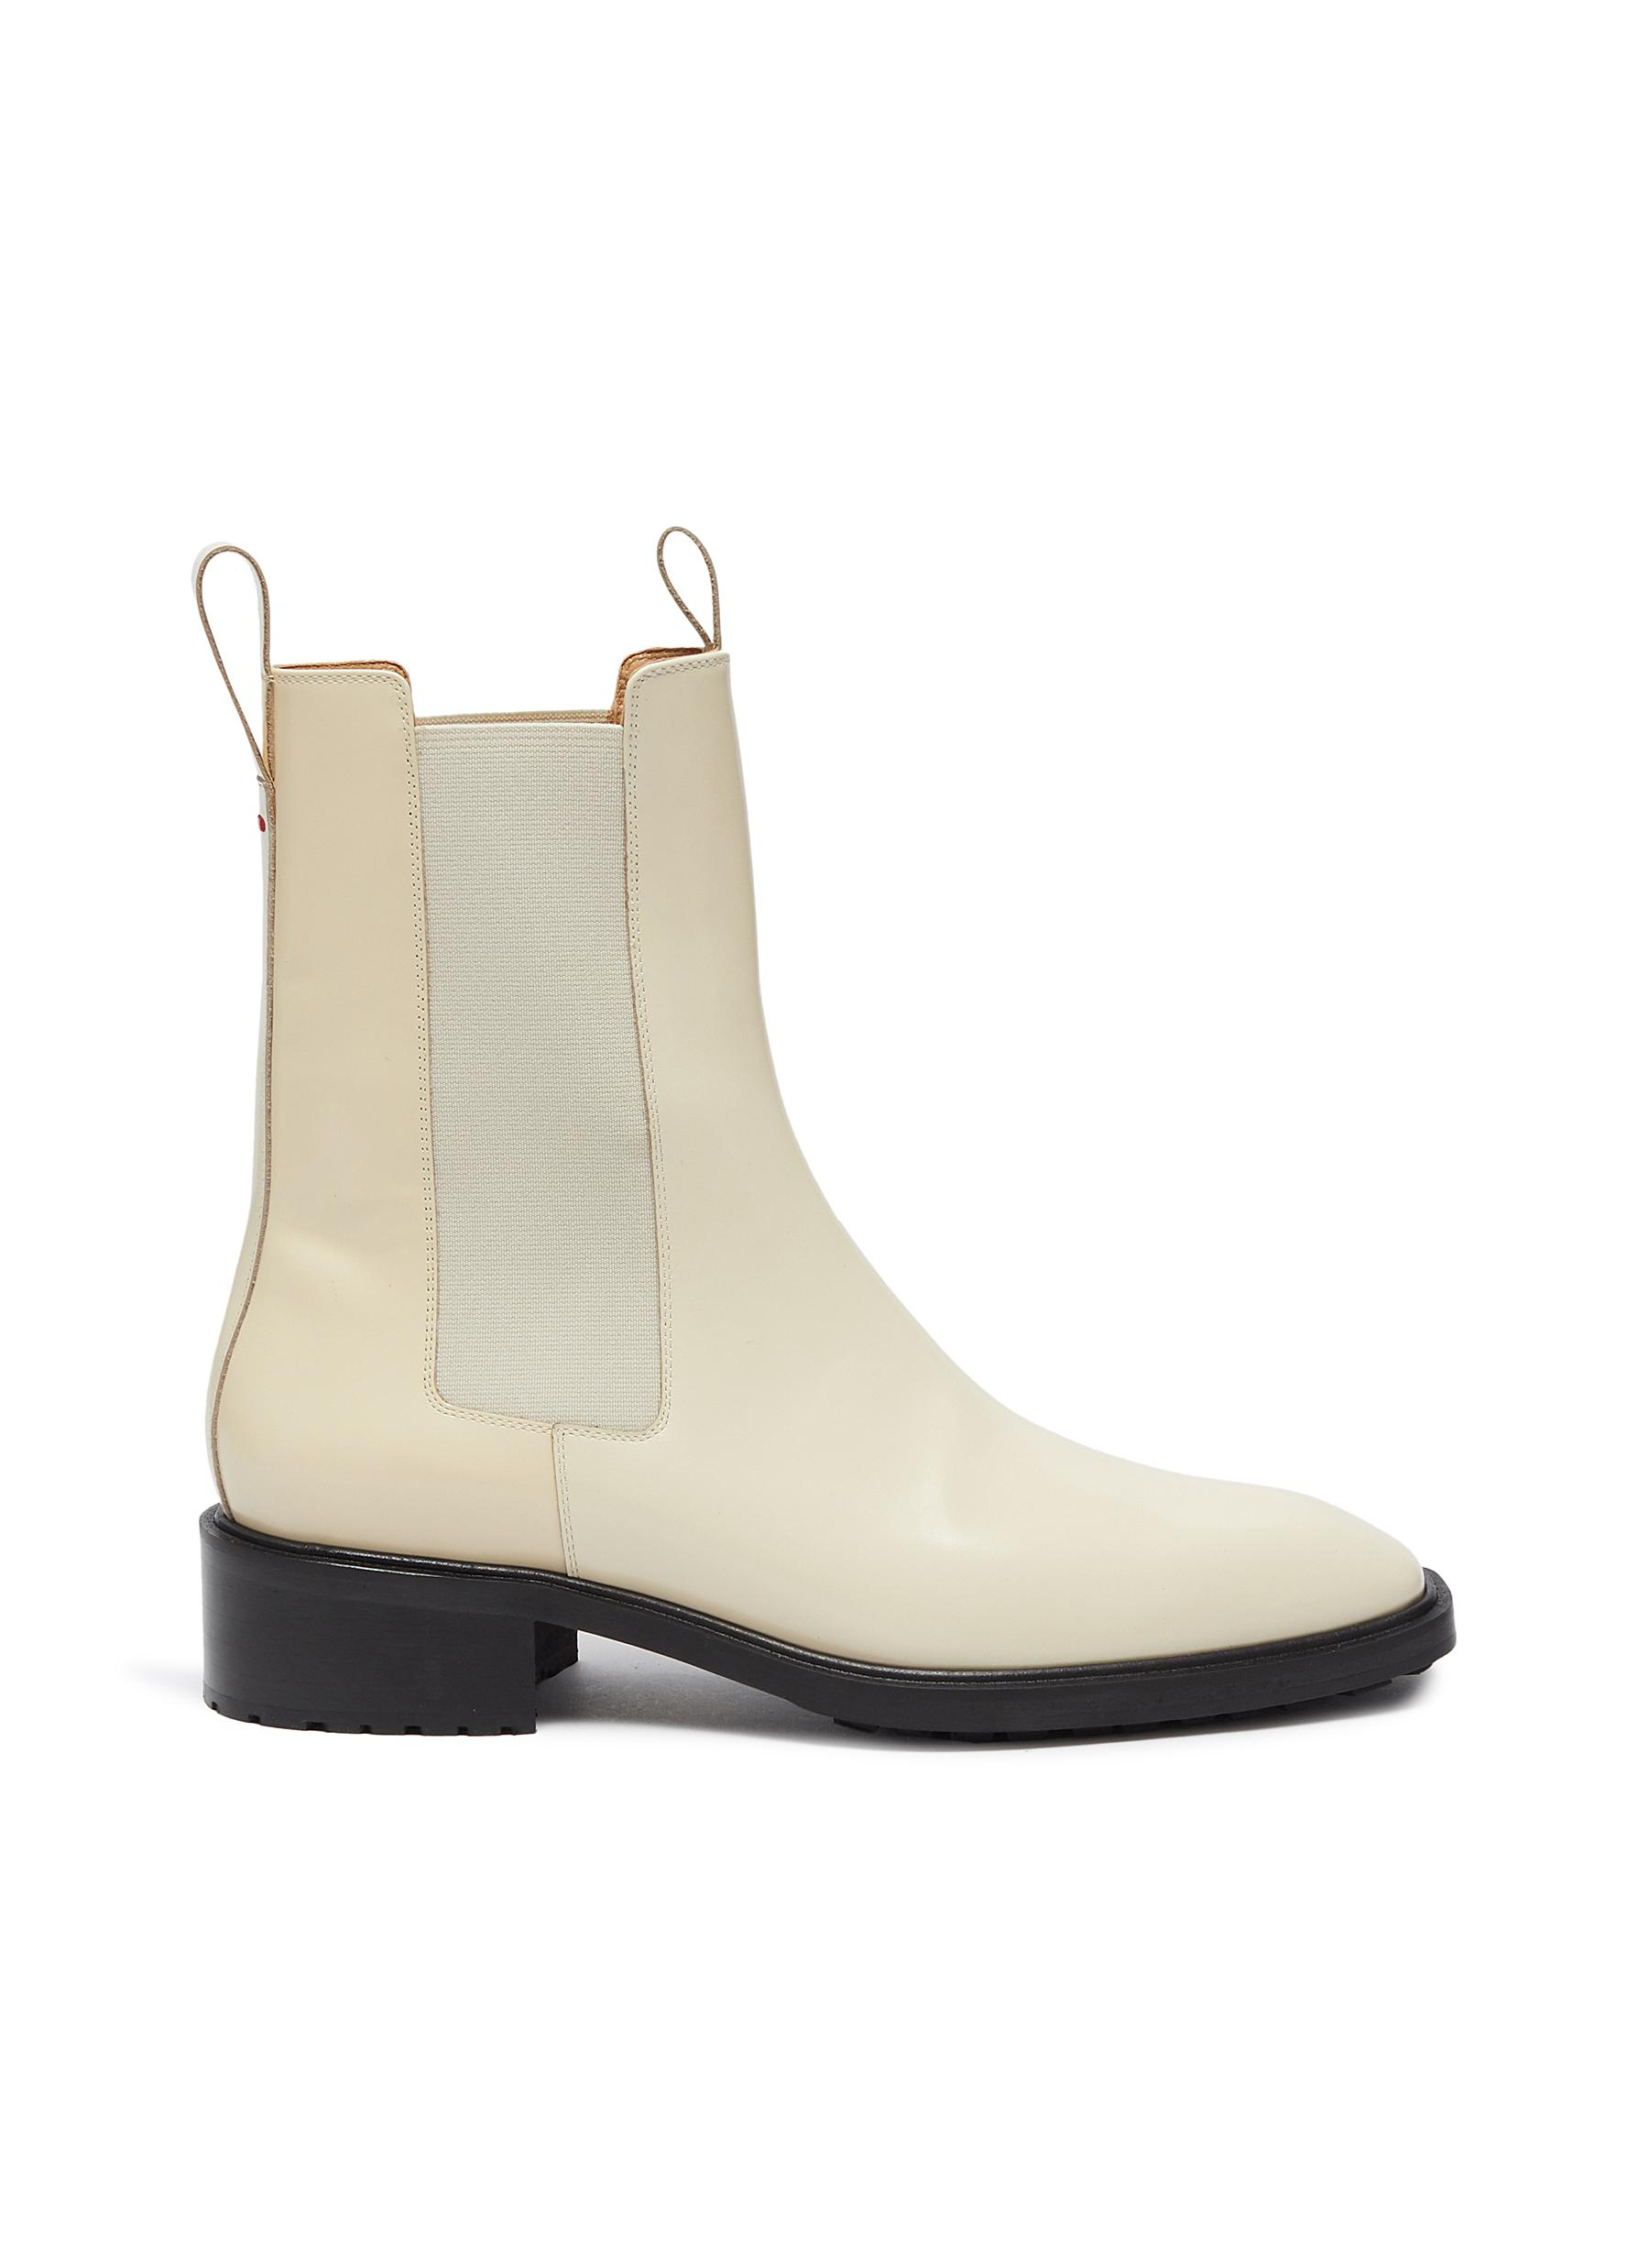 Aeyde 'SIMONE' PATENT LEATHER CHELSEA BOOTS